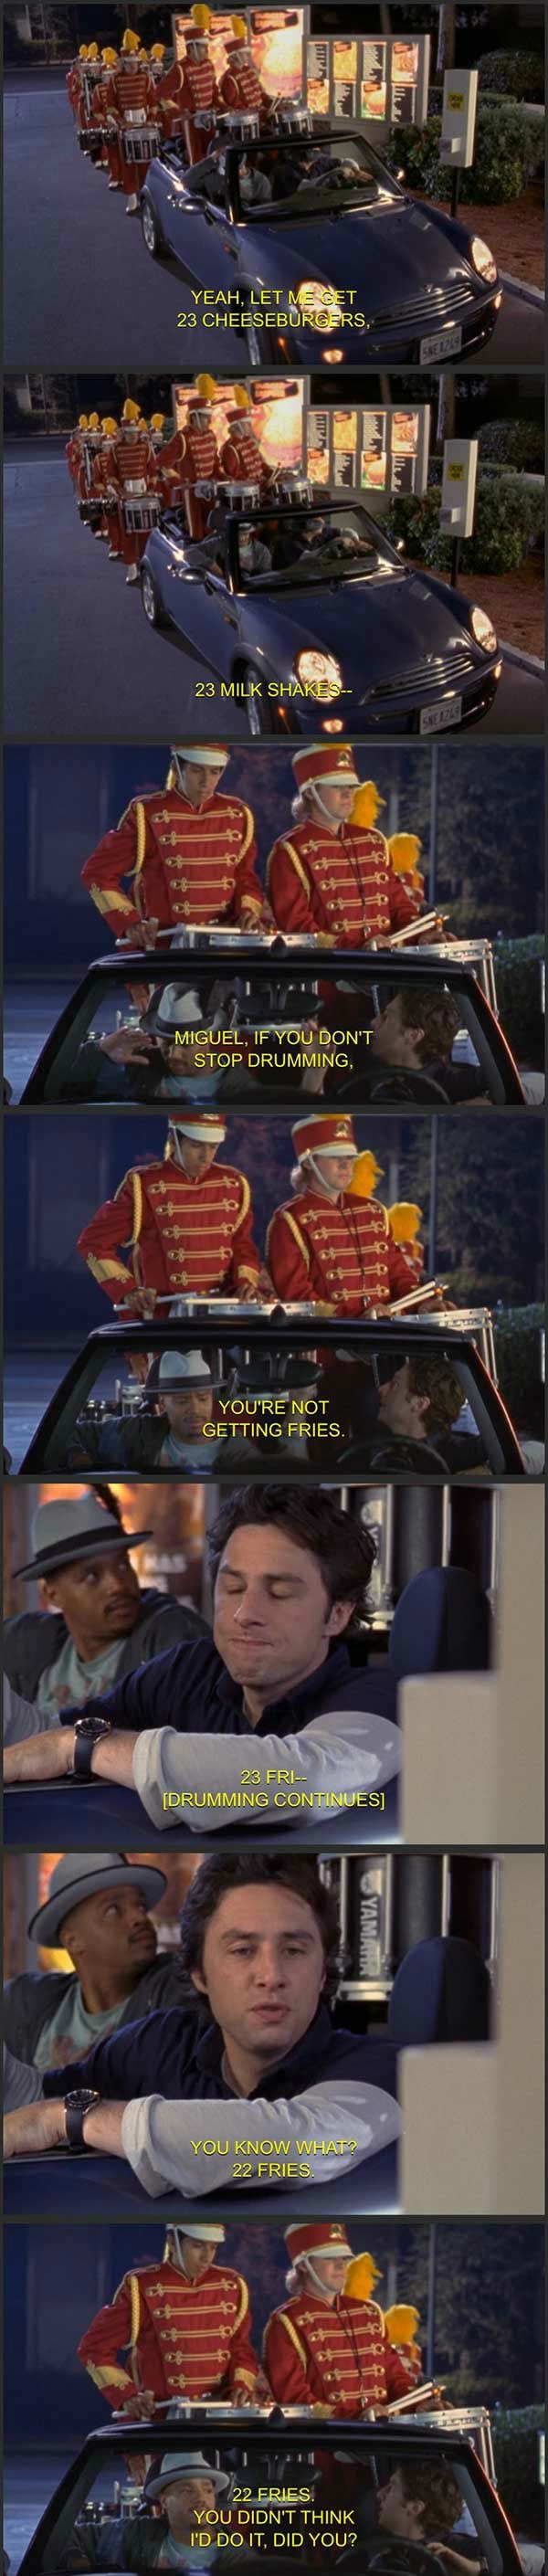 funny-pictures-23-cheeseburgers-scrubs